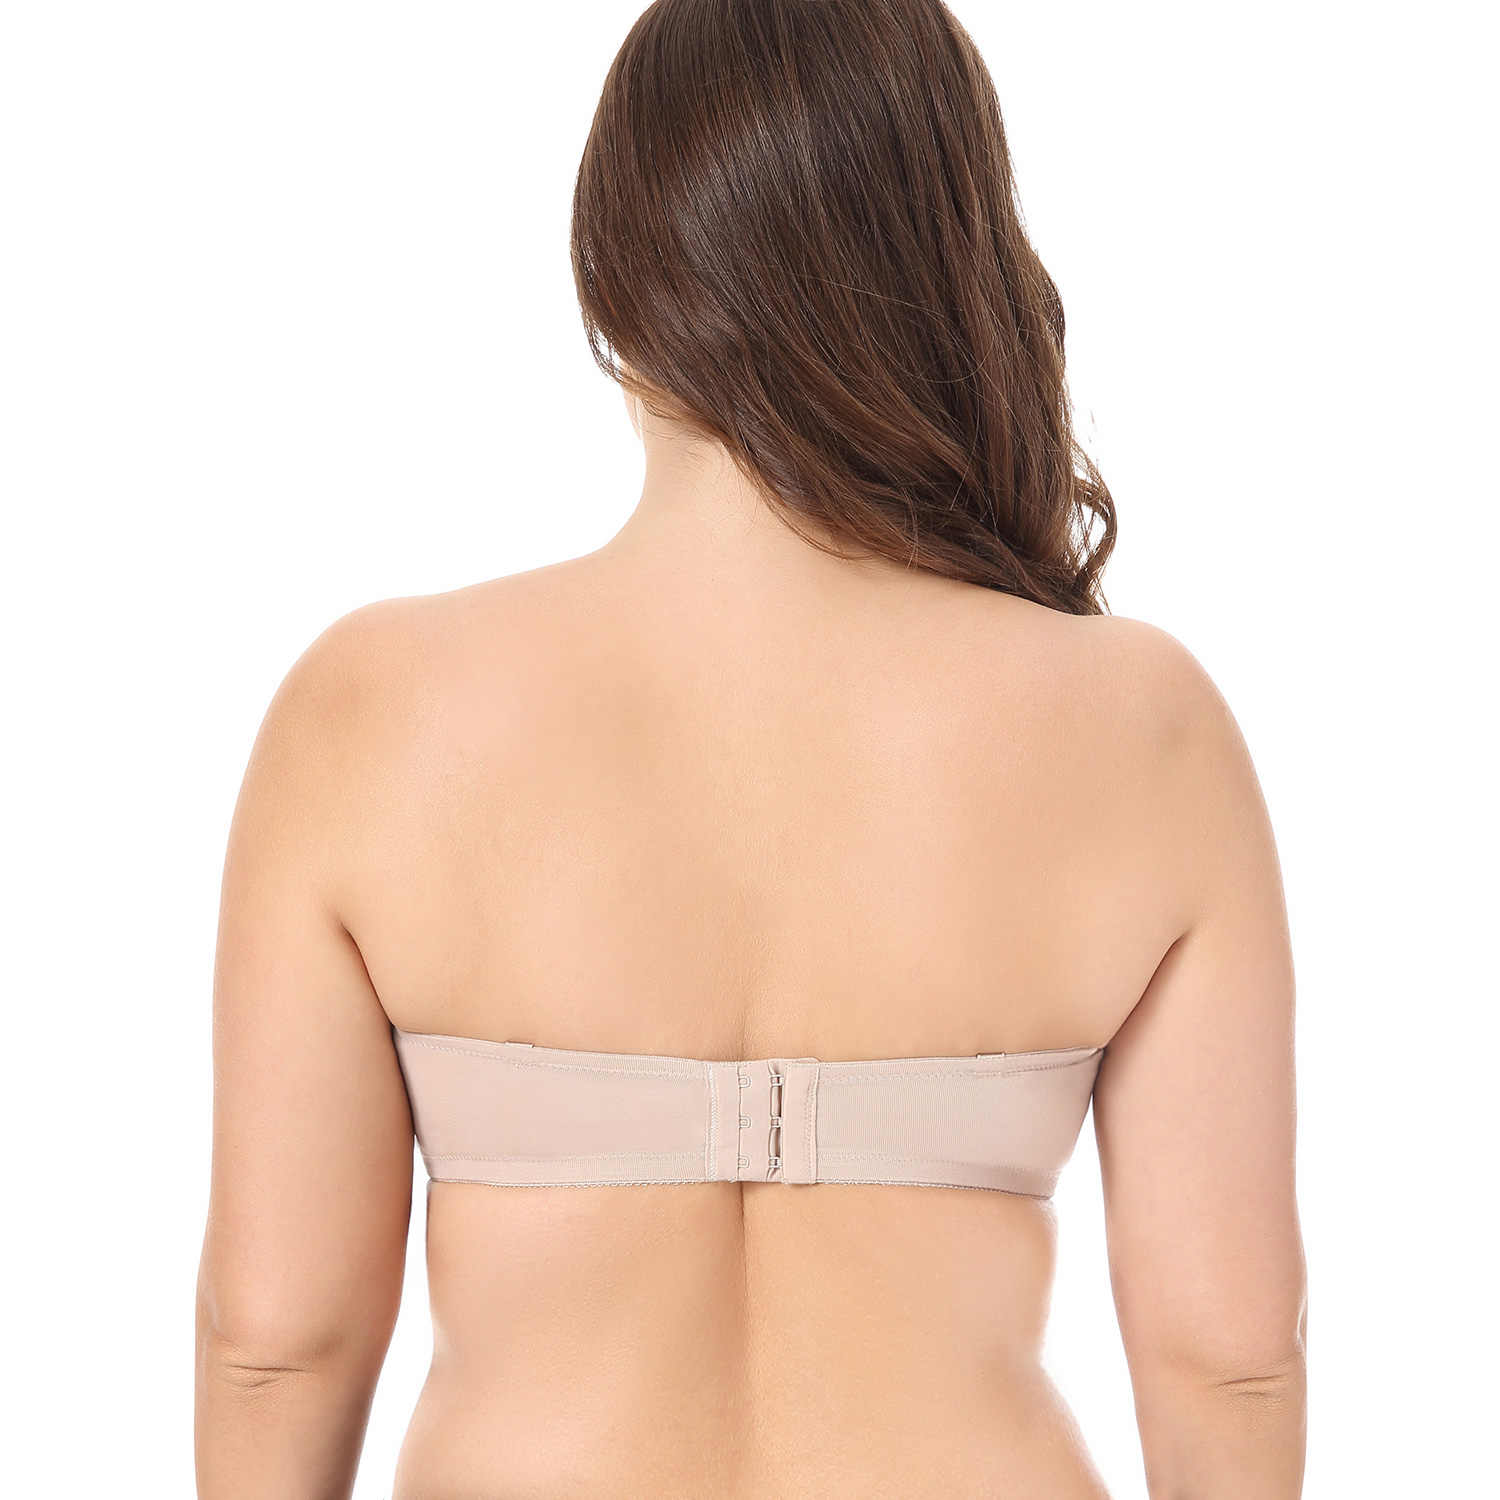 184752e8a01 ... Strapless Bra  Women s Multiway Smooth Underwire Convertible Straps Non  Padded Plus Size Strapless ...